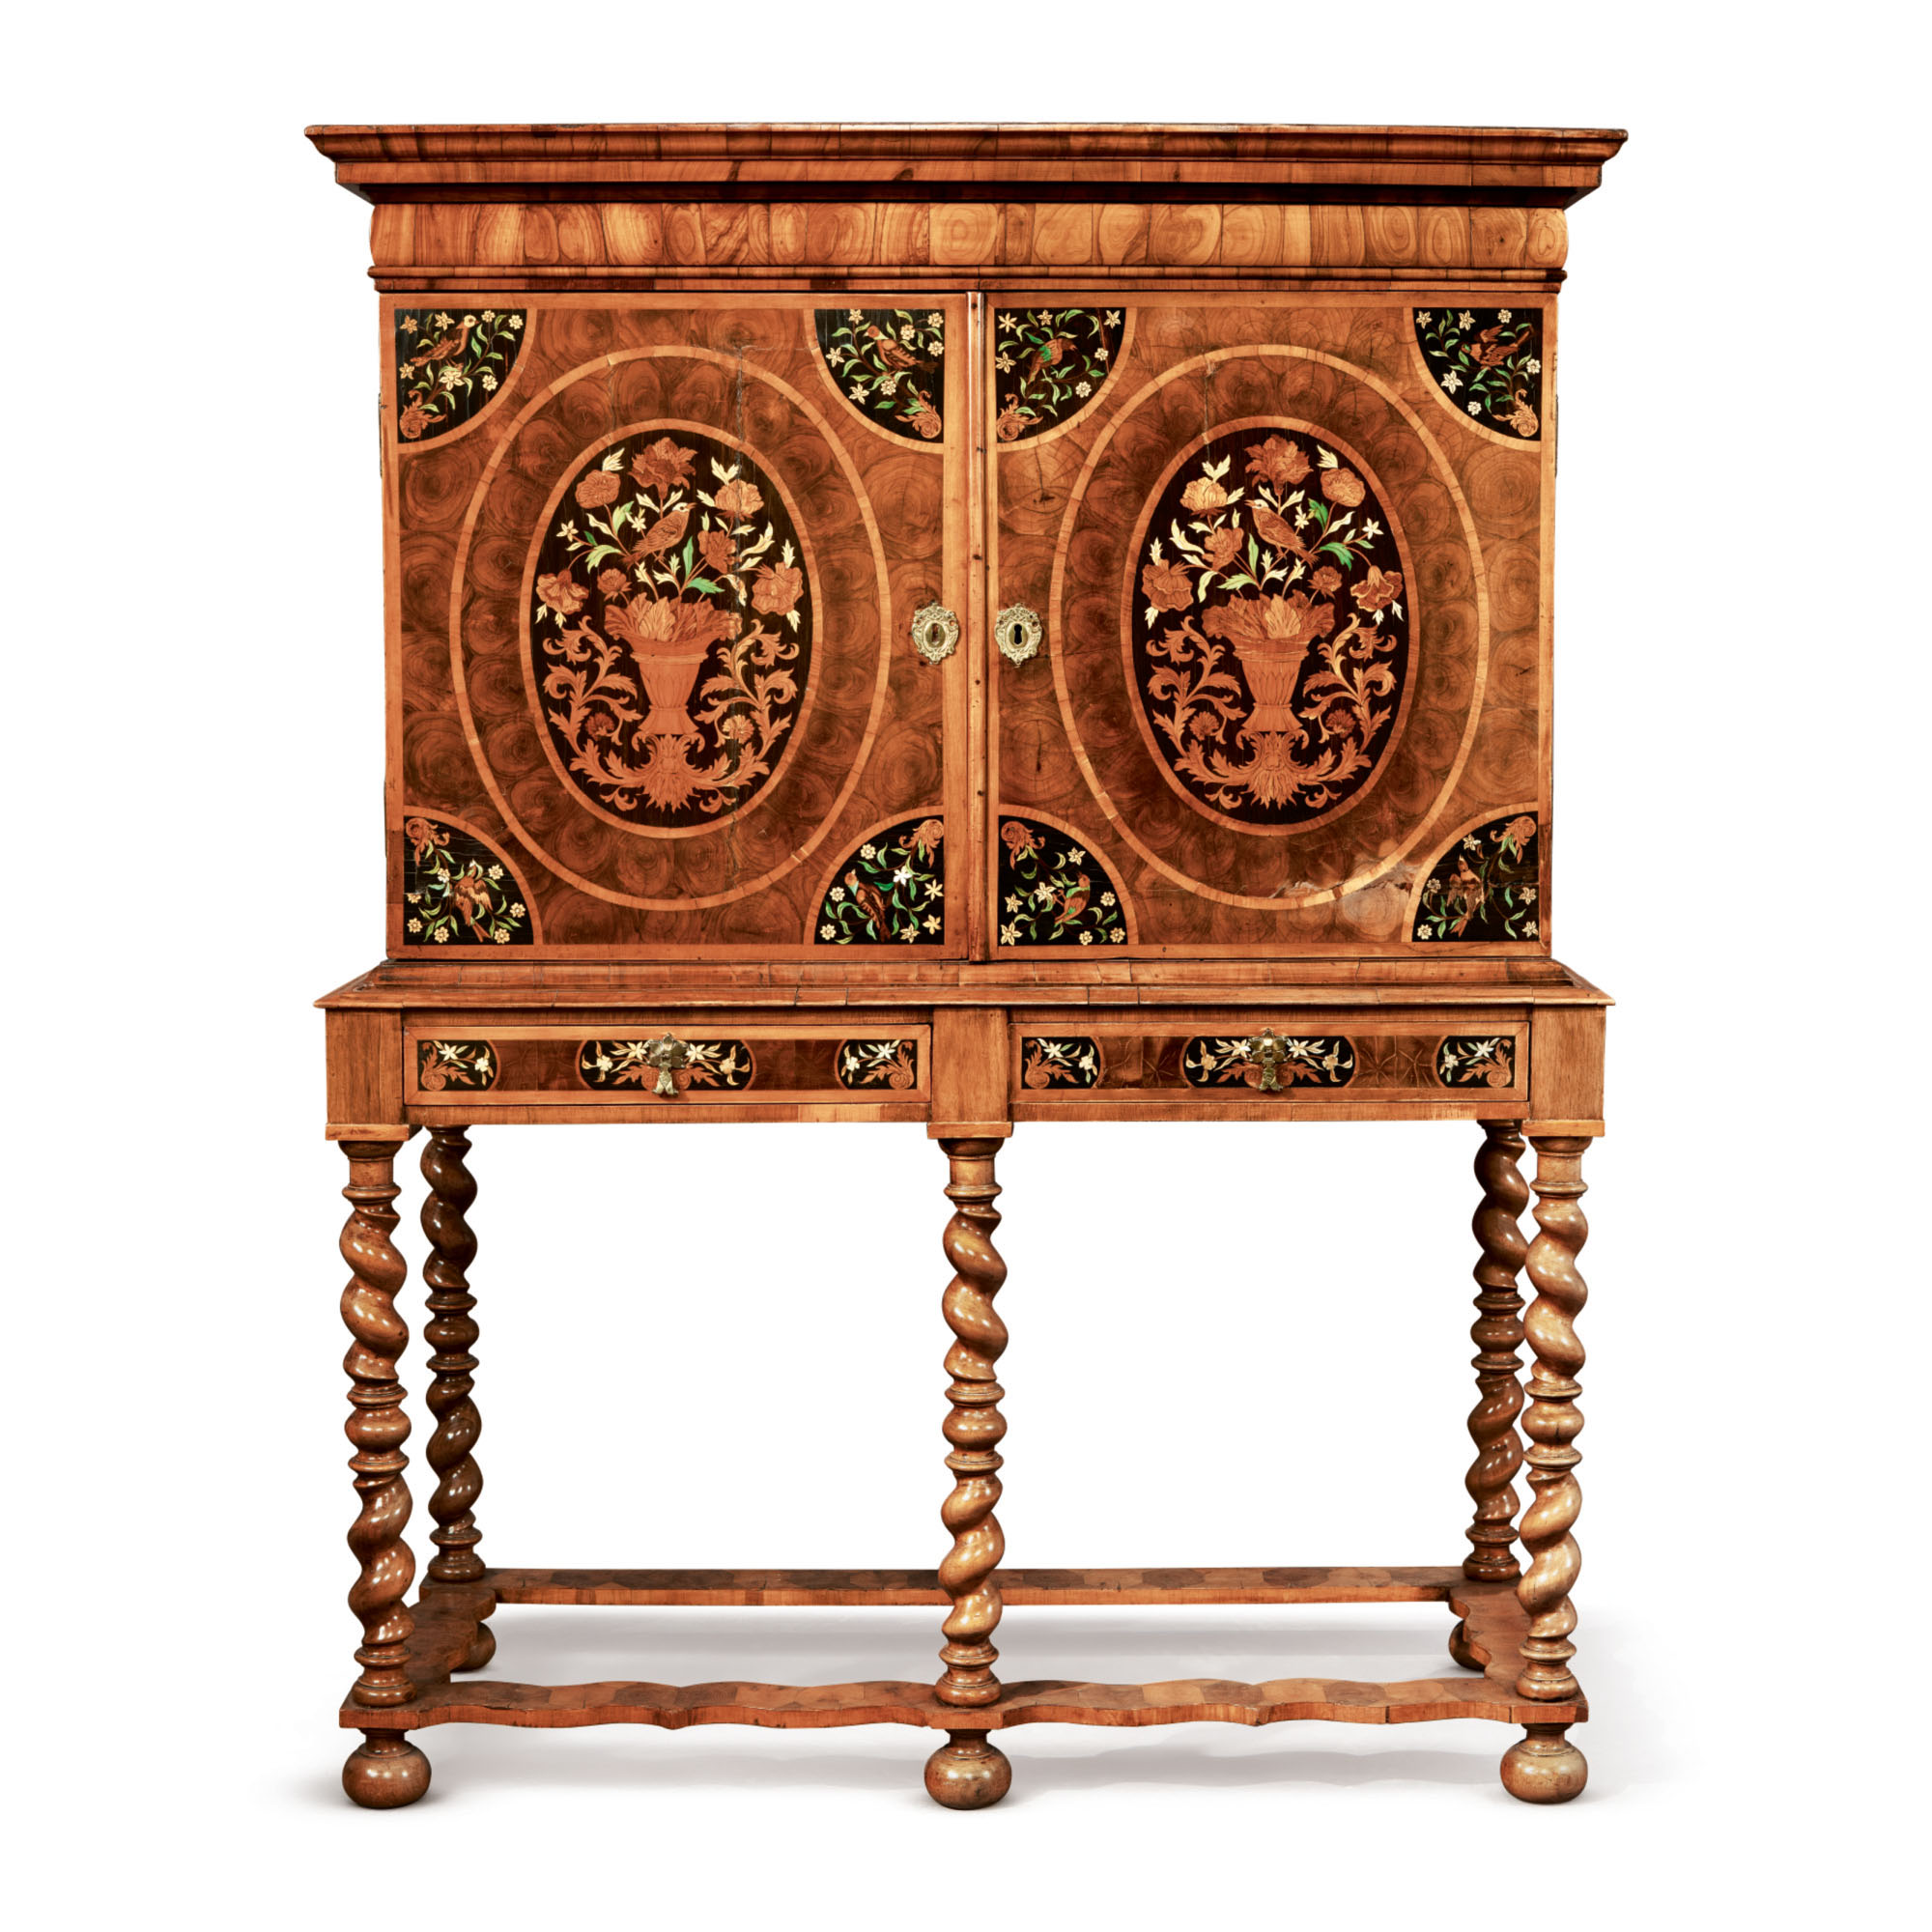 A WILLIAM AND MARY OYSTER-VENEERED WALNUT AND FLORAL MARQUETRY CABINET ON STAND, LATE 17TH CENTURY